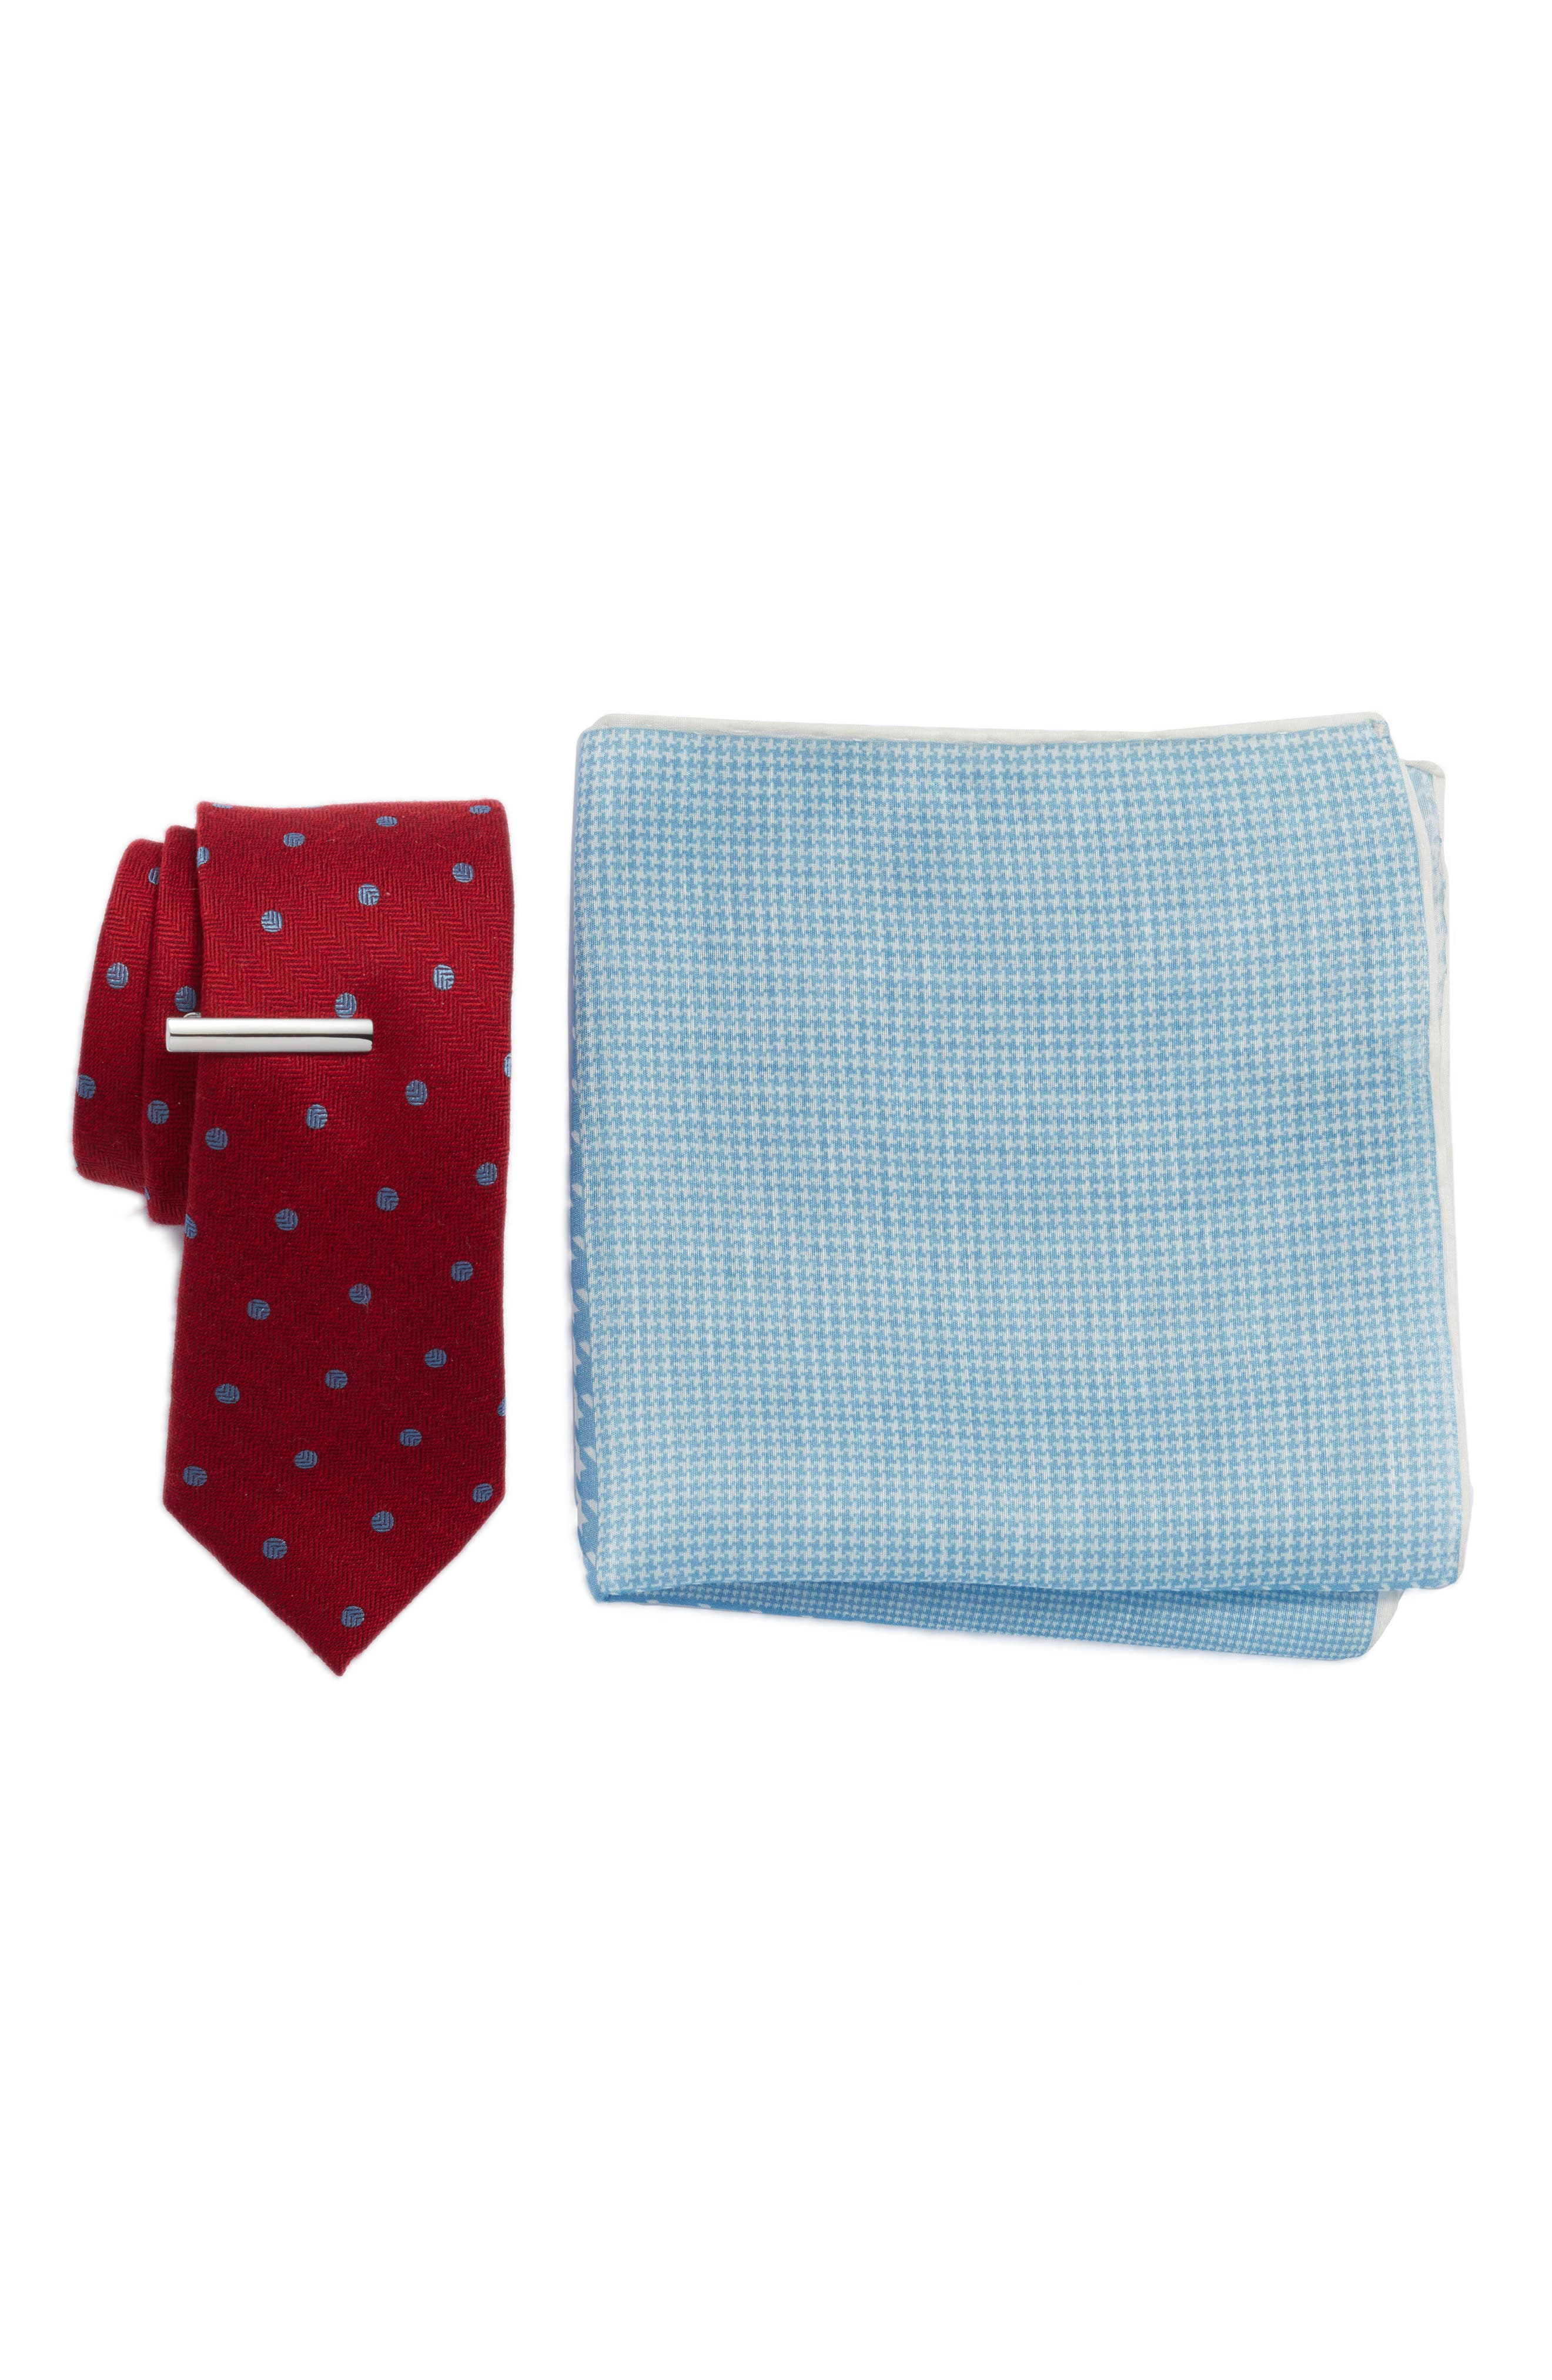 Dotted Hitch 3-Piece Skinny Tie Style Box,                         Main,                         color, BURGUNDY